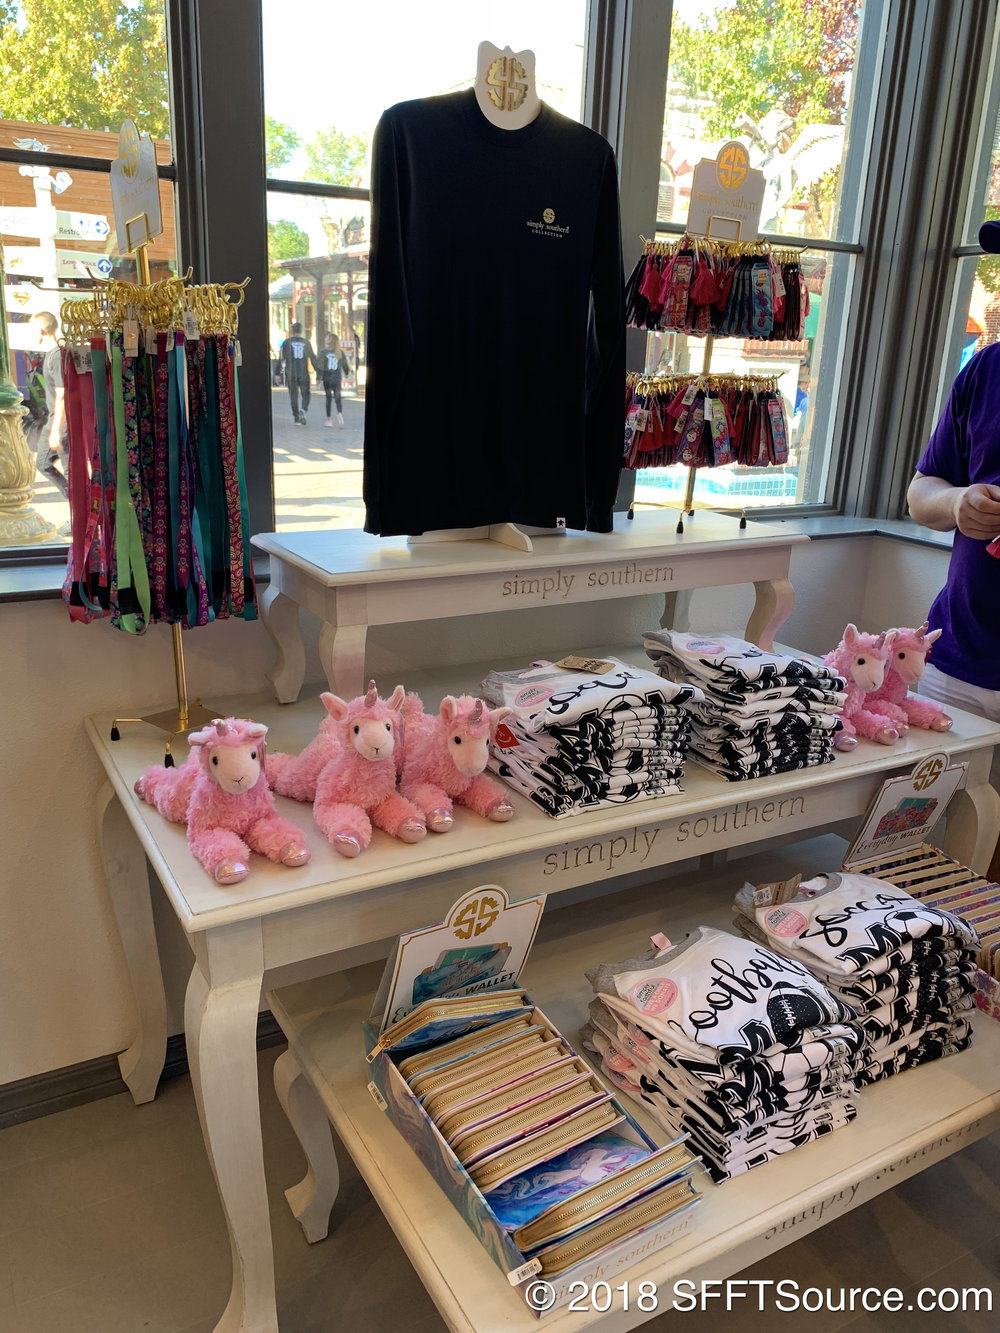 Lanyards, stuffed animals, and more can be found at Simply Southern.